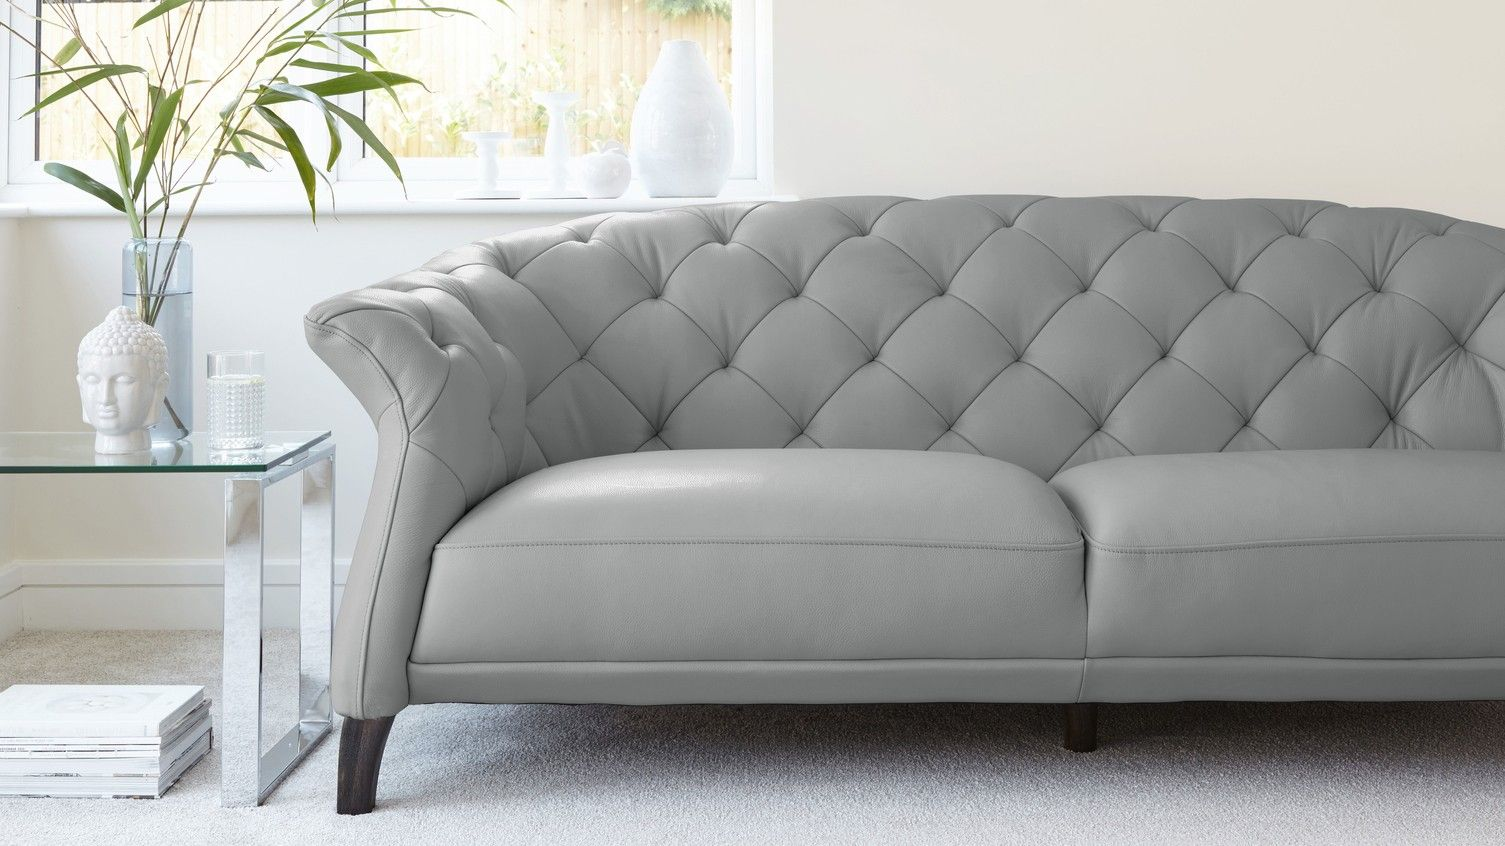 Luxe Modern 2 To 3 Seater Leather Chesterfield Sofa Family Room